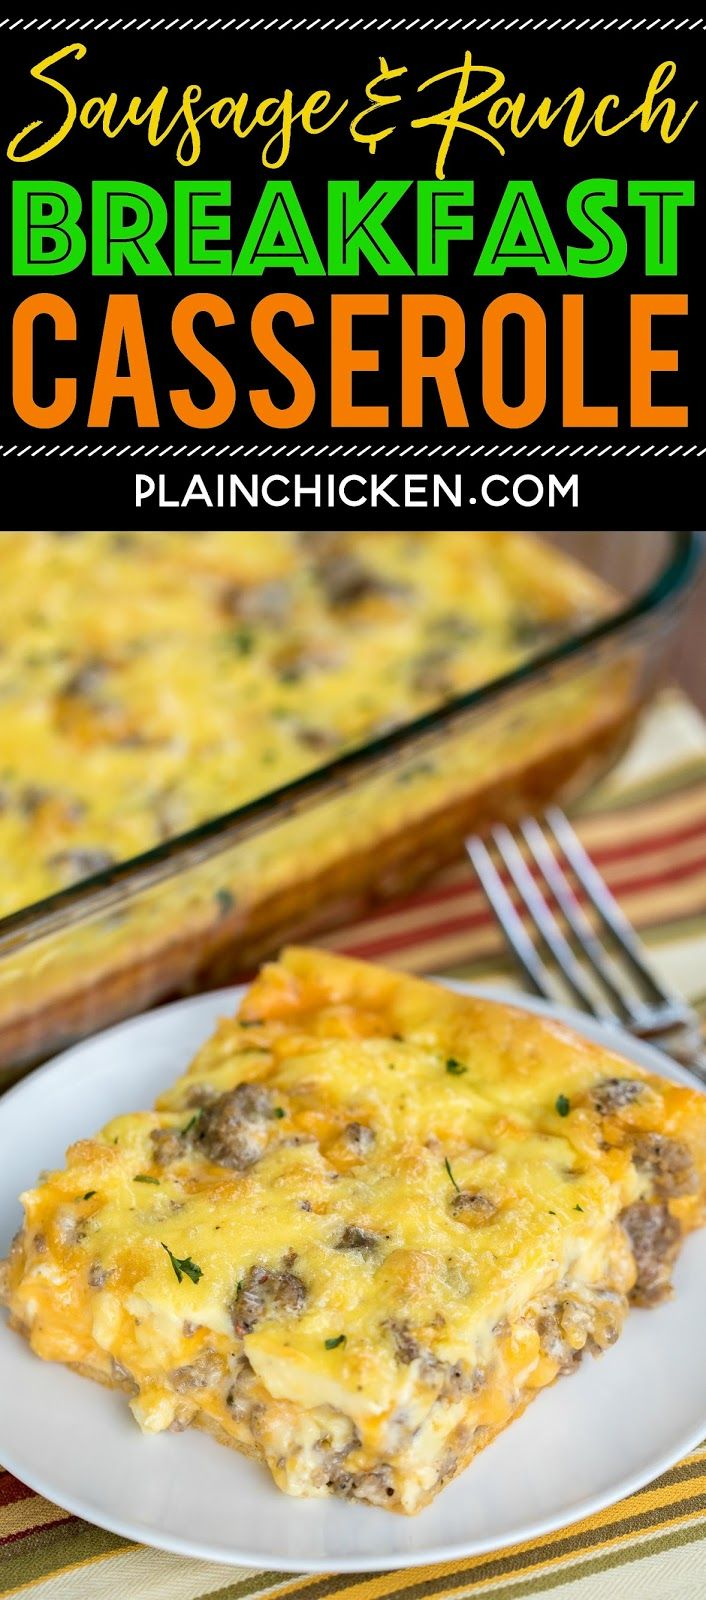 Sausage and Ranch Breakfast Casserole Recipe - CRAZY good!! Crescent rolls topped with eggs, milk, cheddar, sausage and ranch. Ready to eat in about 3...